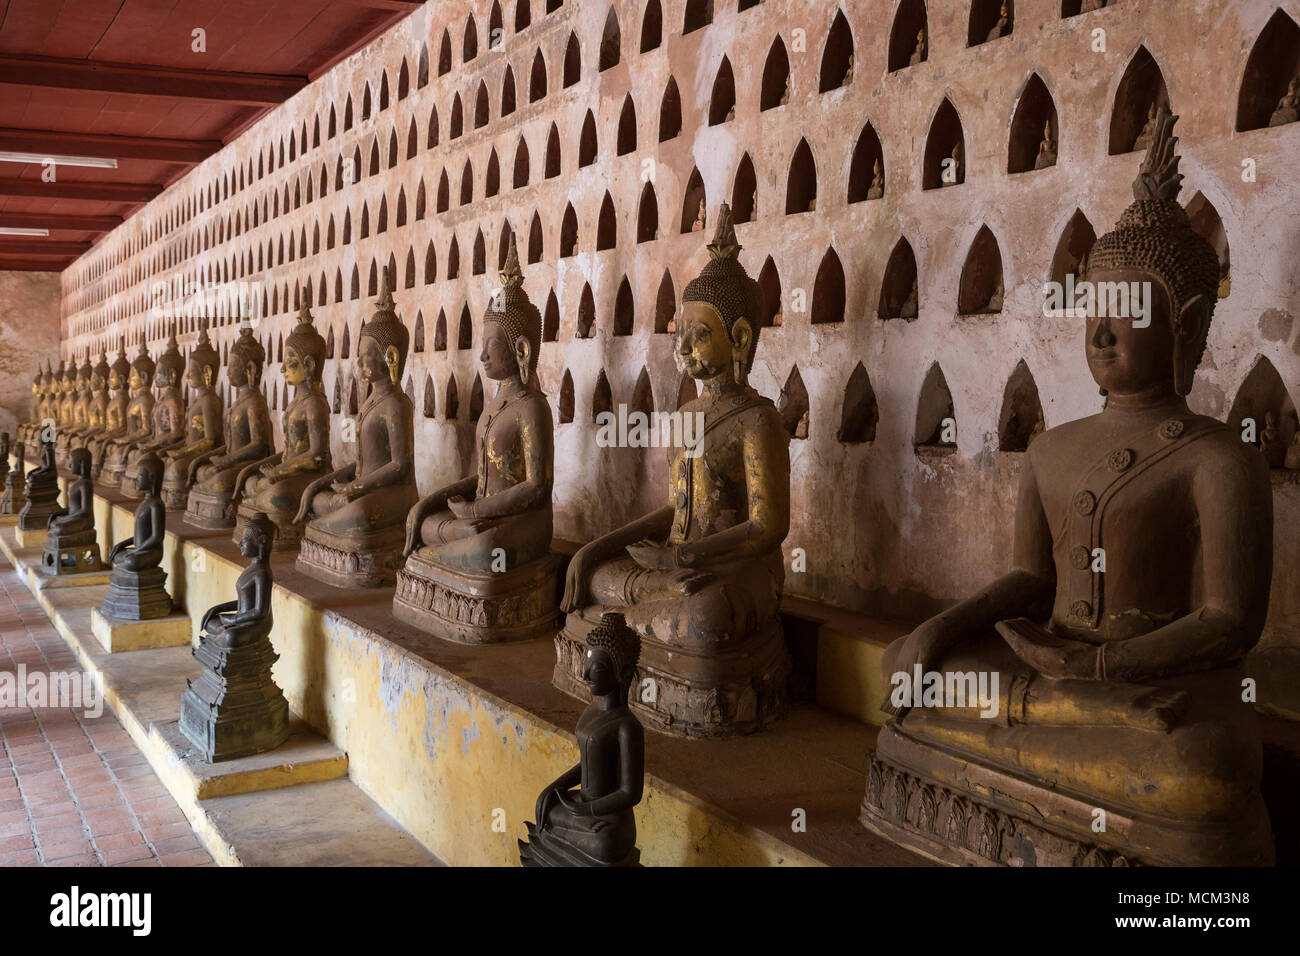 View of many old and aged Buddha statues at the Wat Si Saket (Sisaket) temple's cloister in Vientiane, Laos. - Stock Image